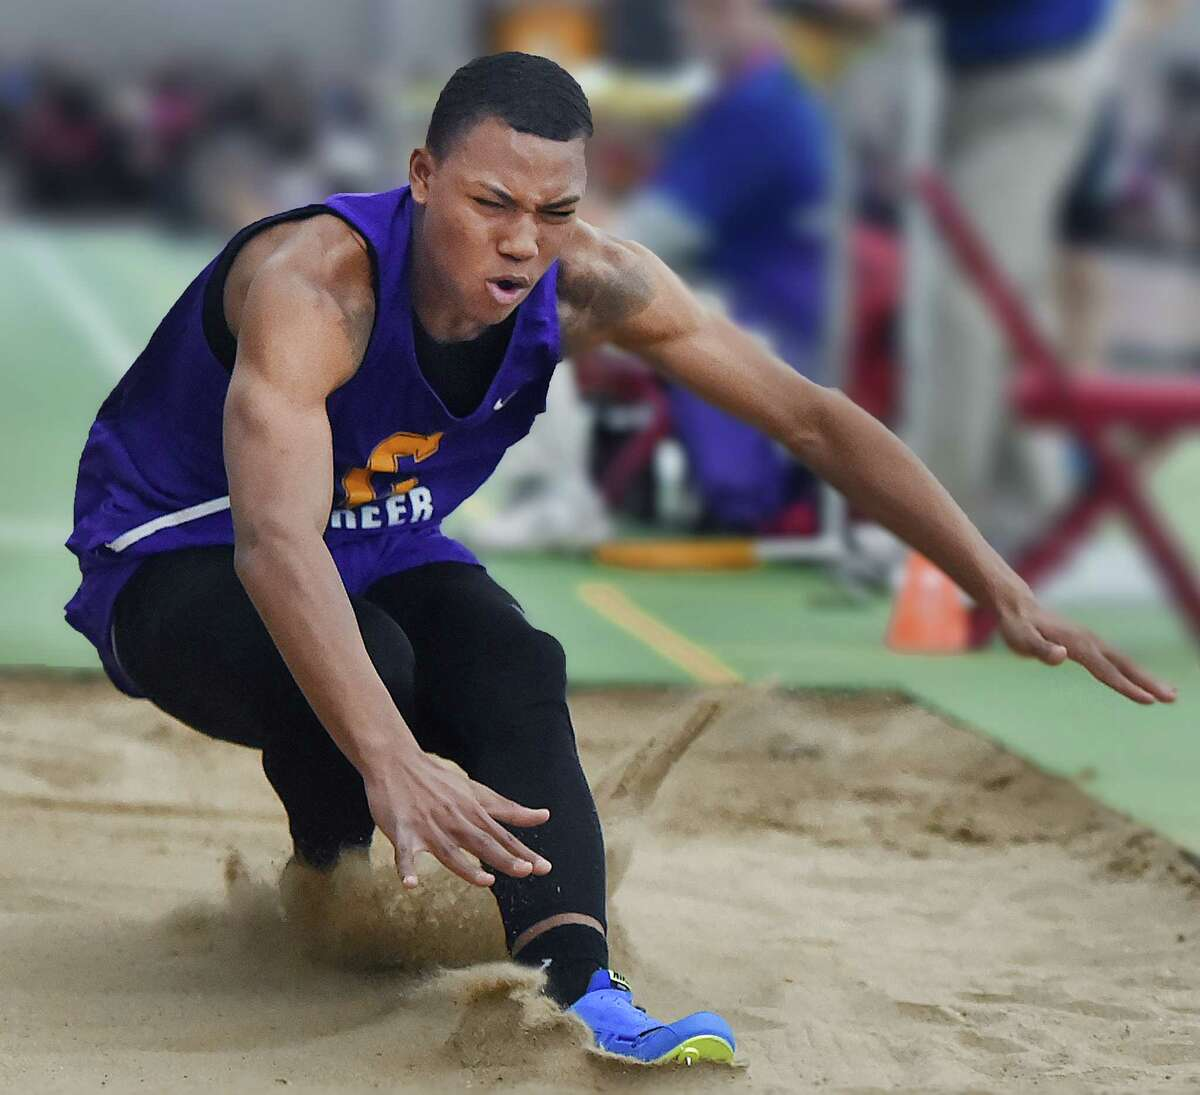 Career senior Dyshon Vaughn wins the long jump with a distance of 23-08.50 at the CIAC Boys Indoor Track & Field State Open, Saturday, Feb. 17, 2018, at Floyd Little Athletic Center at Hillhouse High School in New Haven.